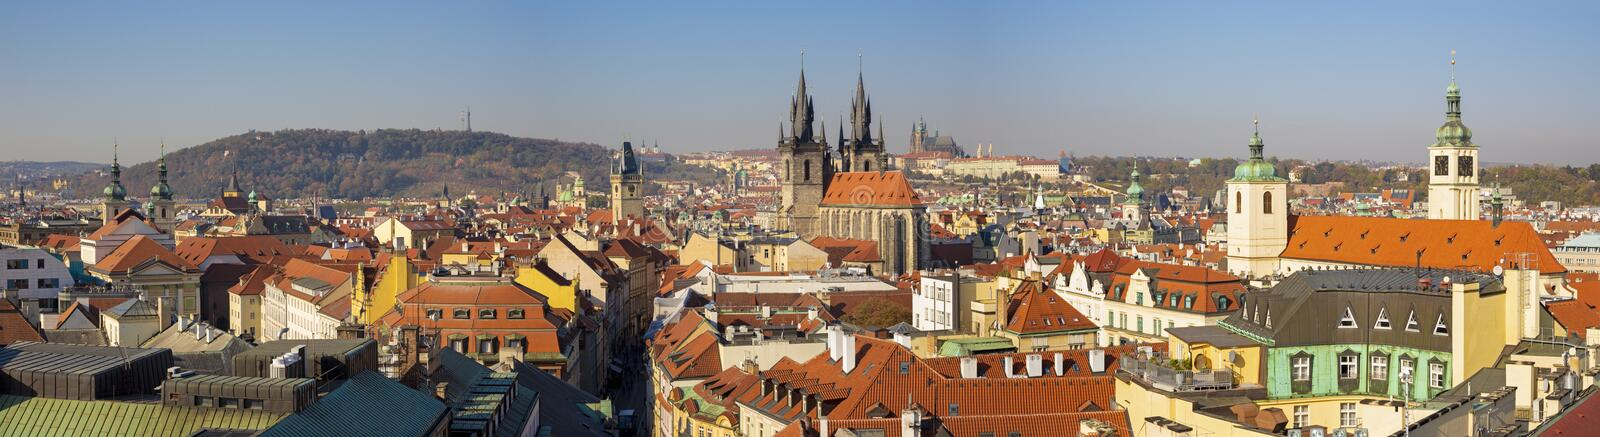 Prague - The panorama of the city with the Charles bridge and the Old Town  in evening light.  stock image